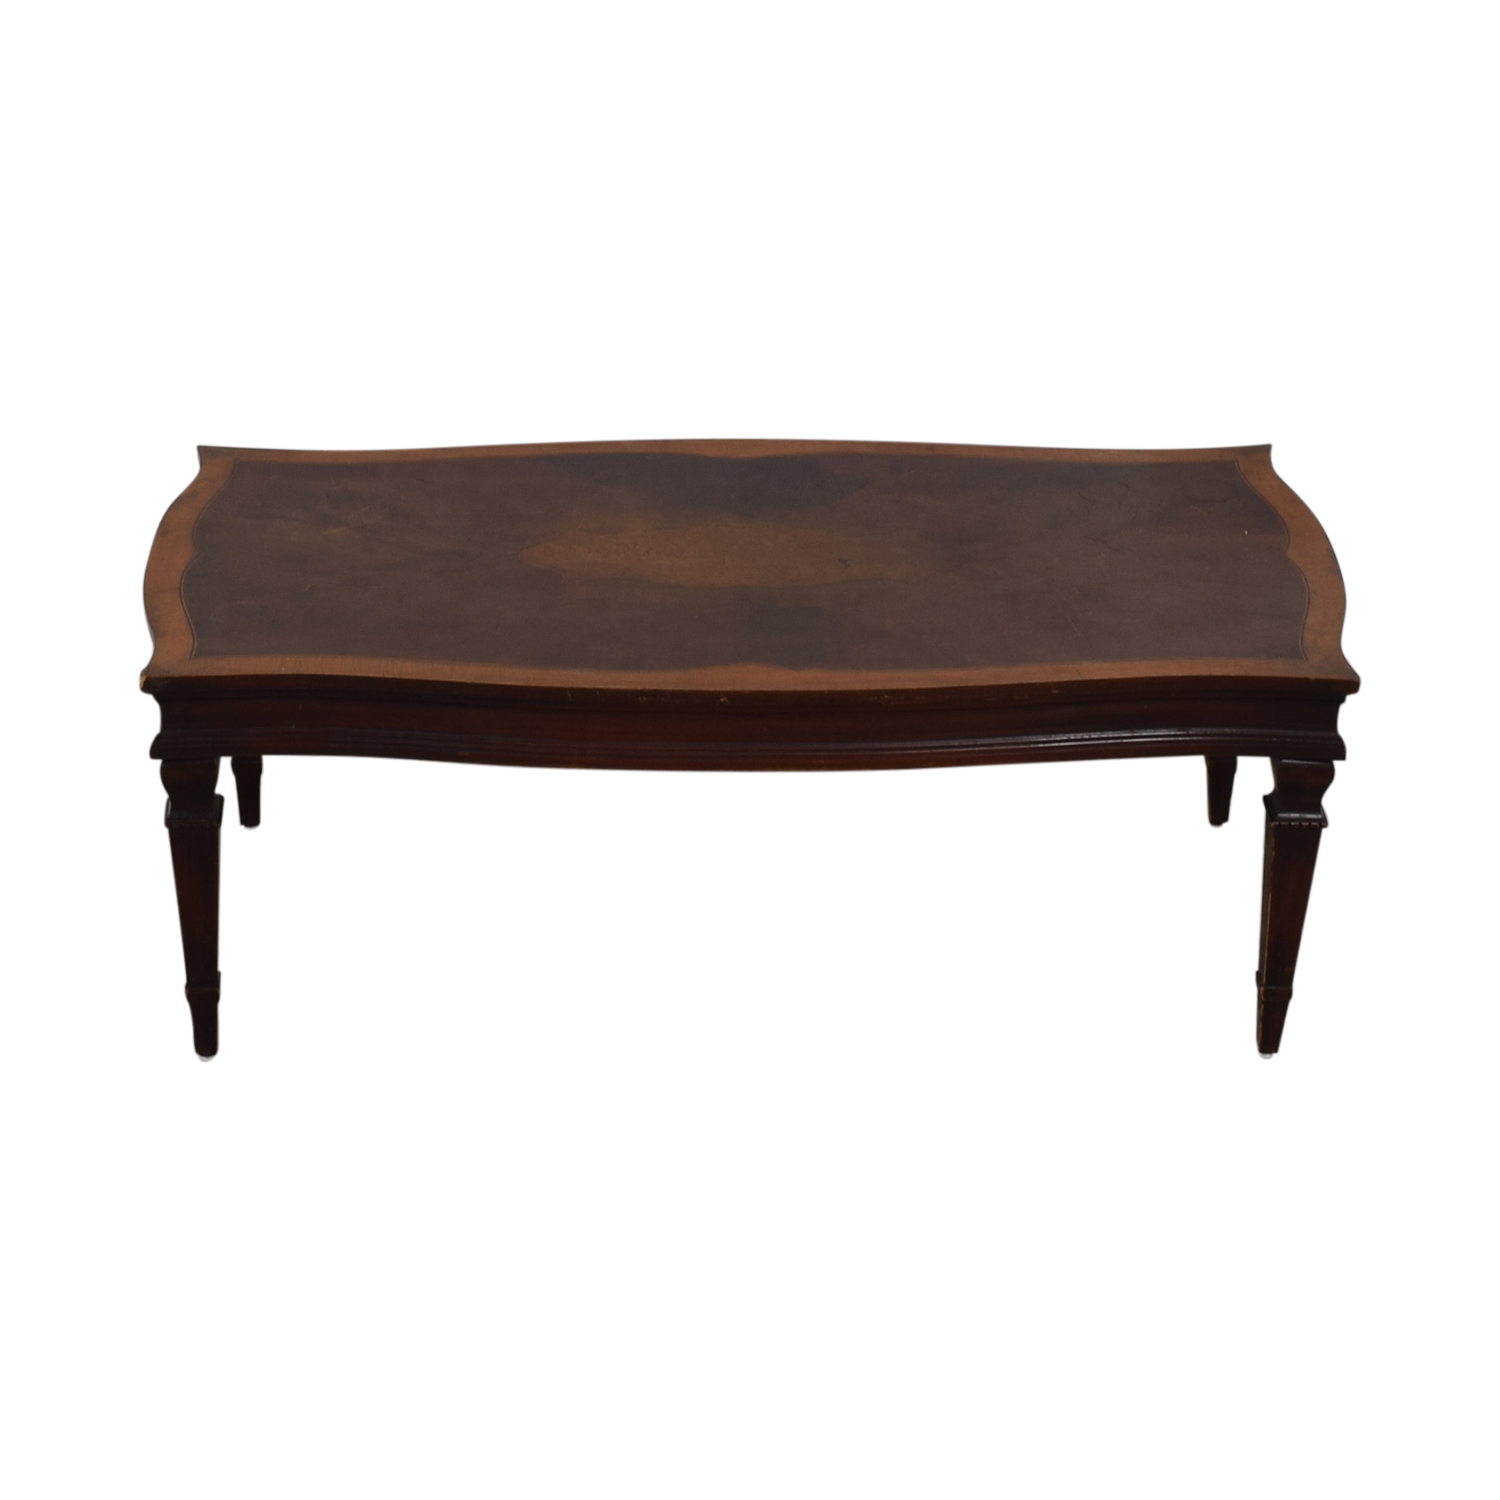 Antique Wood Coffee Table price